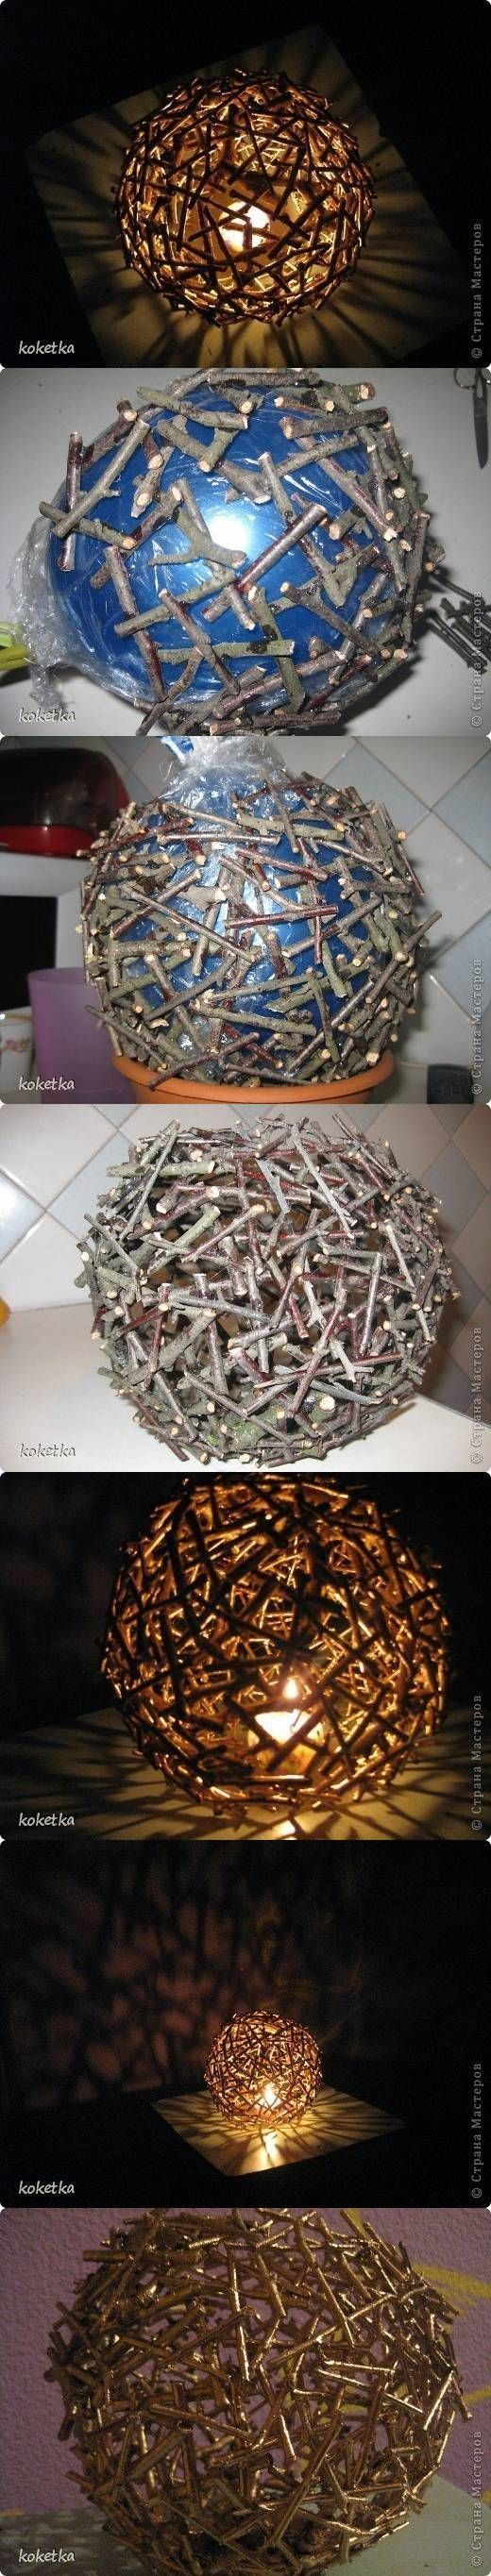 20 Fascinating And Cool DIY Ideas To Add More Beauty To Your Sweet Home cefbe515ed5fae8b9eeccf00784ddfcf